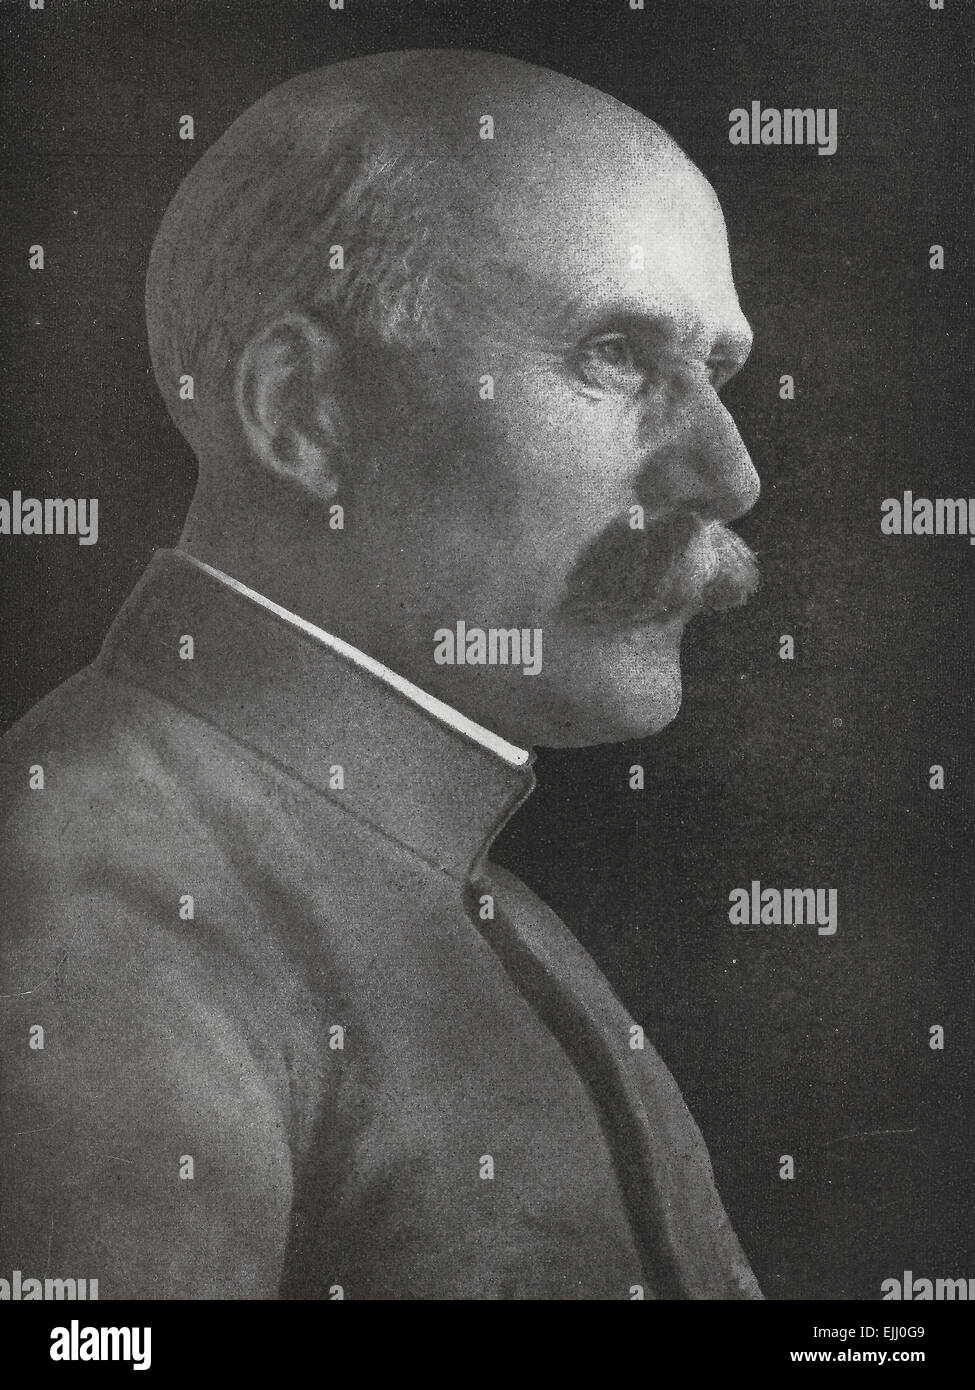 Henri Philippe Petain, Commander in Chief of the armies in France, circa 1917 - Stock Image